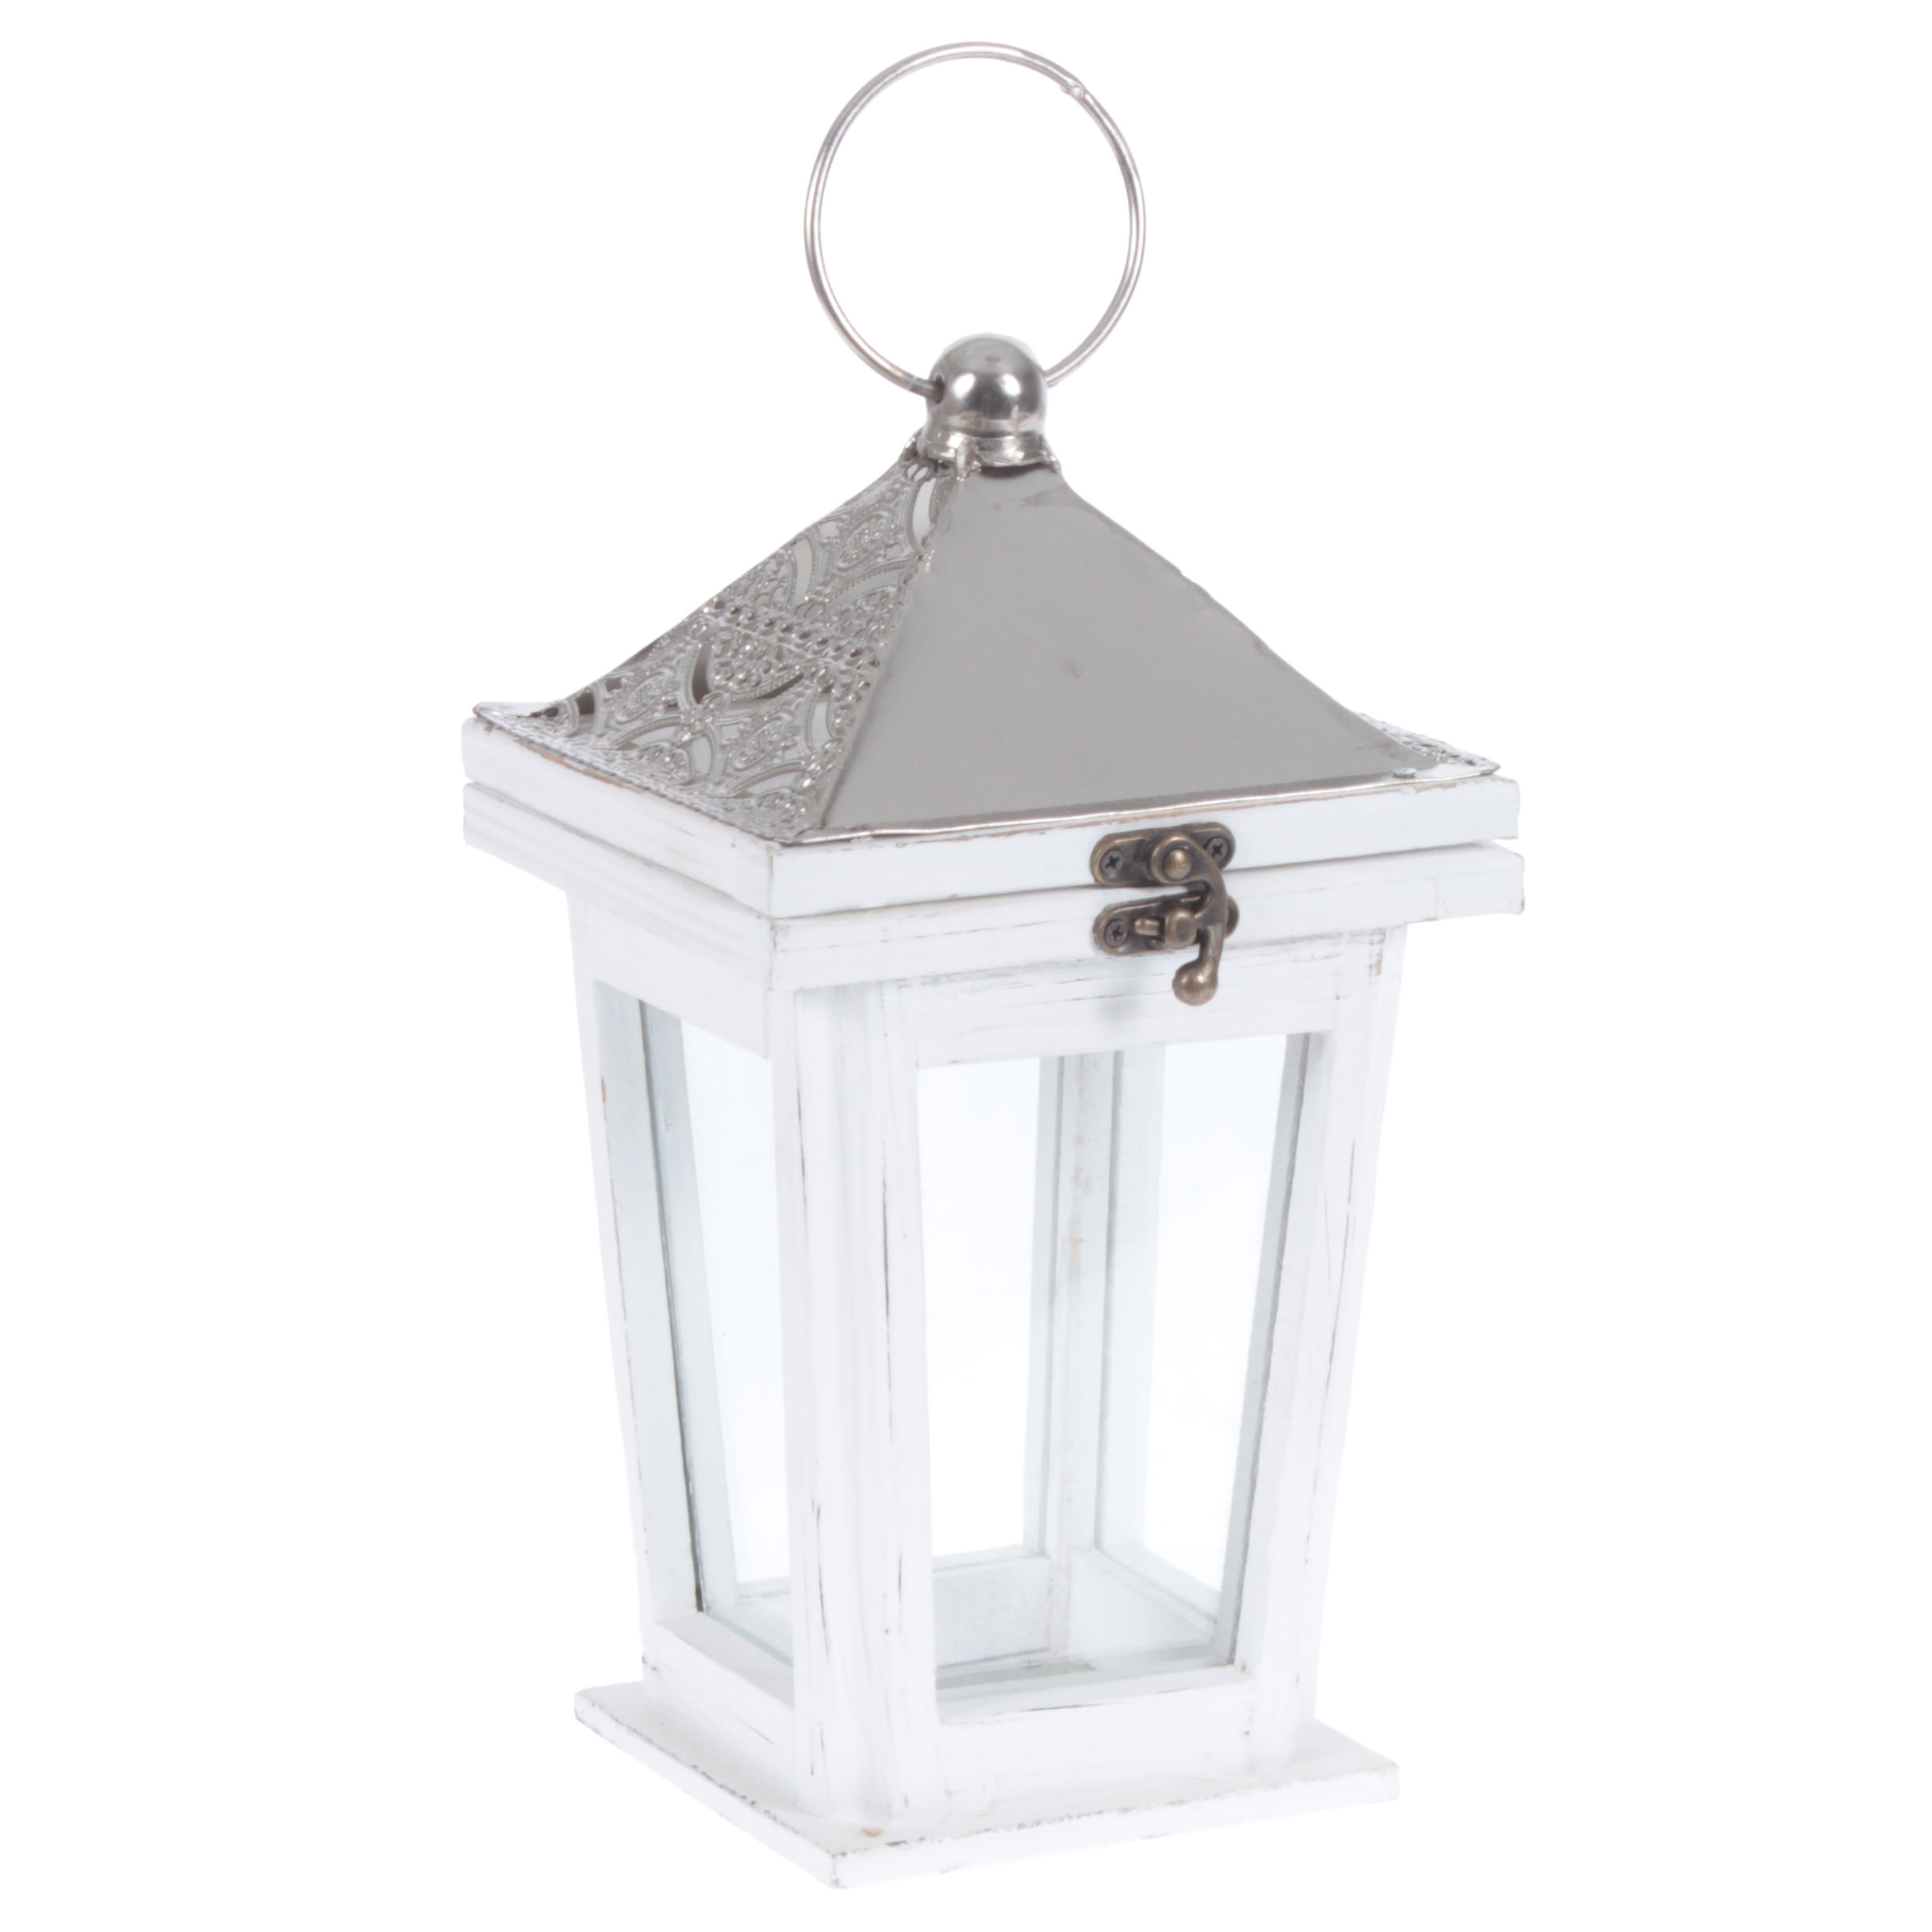 €26 WOODEN/METAL LANTERN IN WHITE/SILVER COLOR 15X15X27